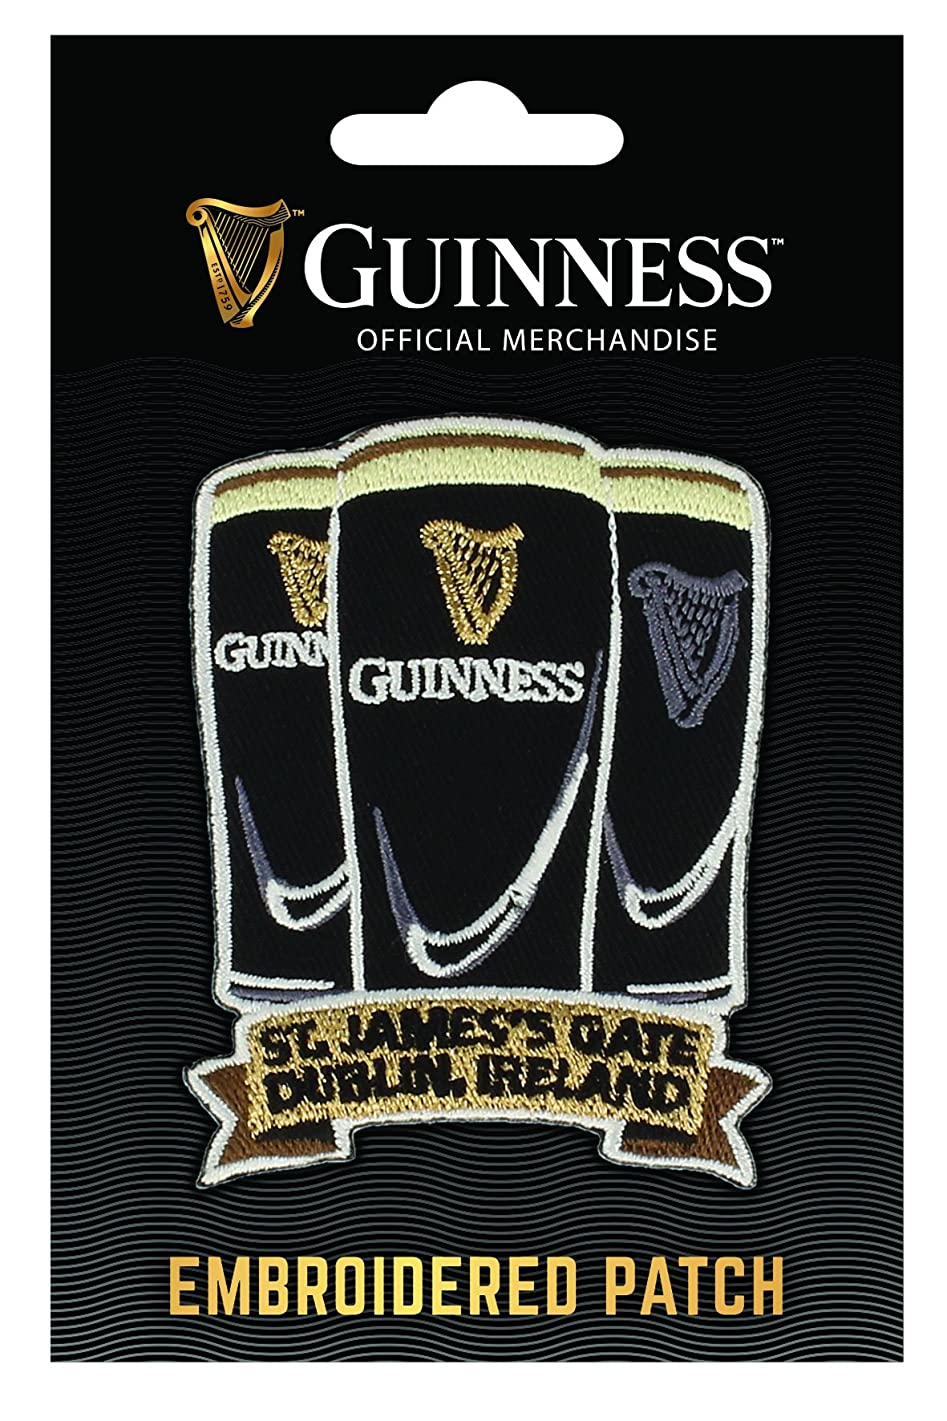 Guinness Embroidered Sew on Patch - 3 Pints